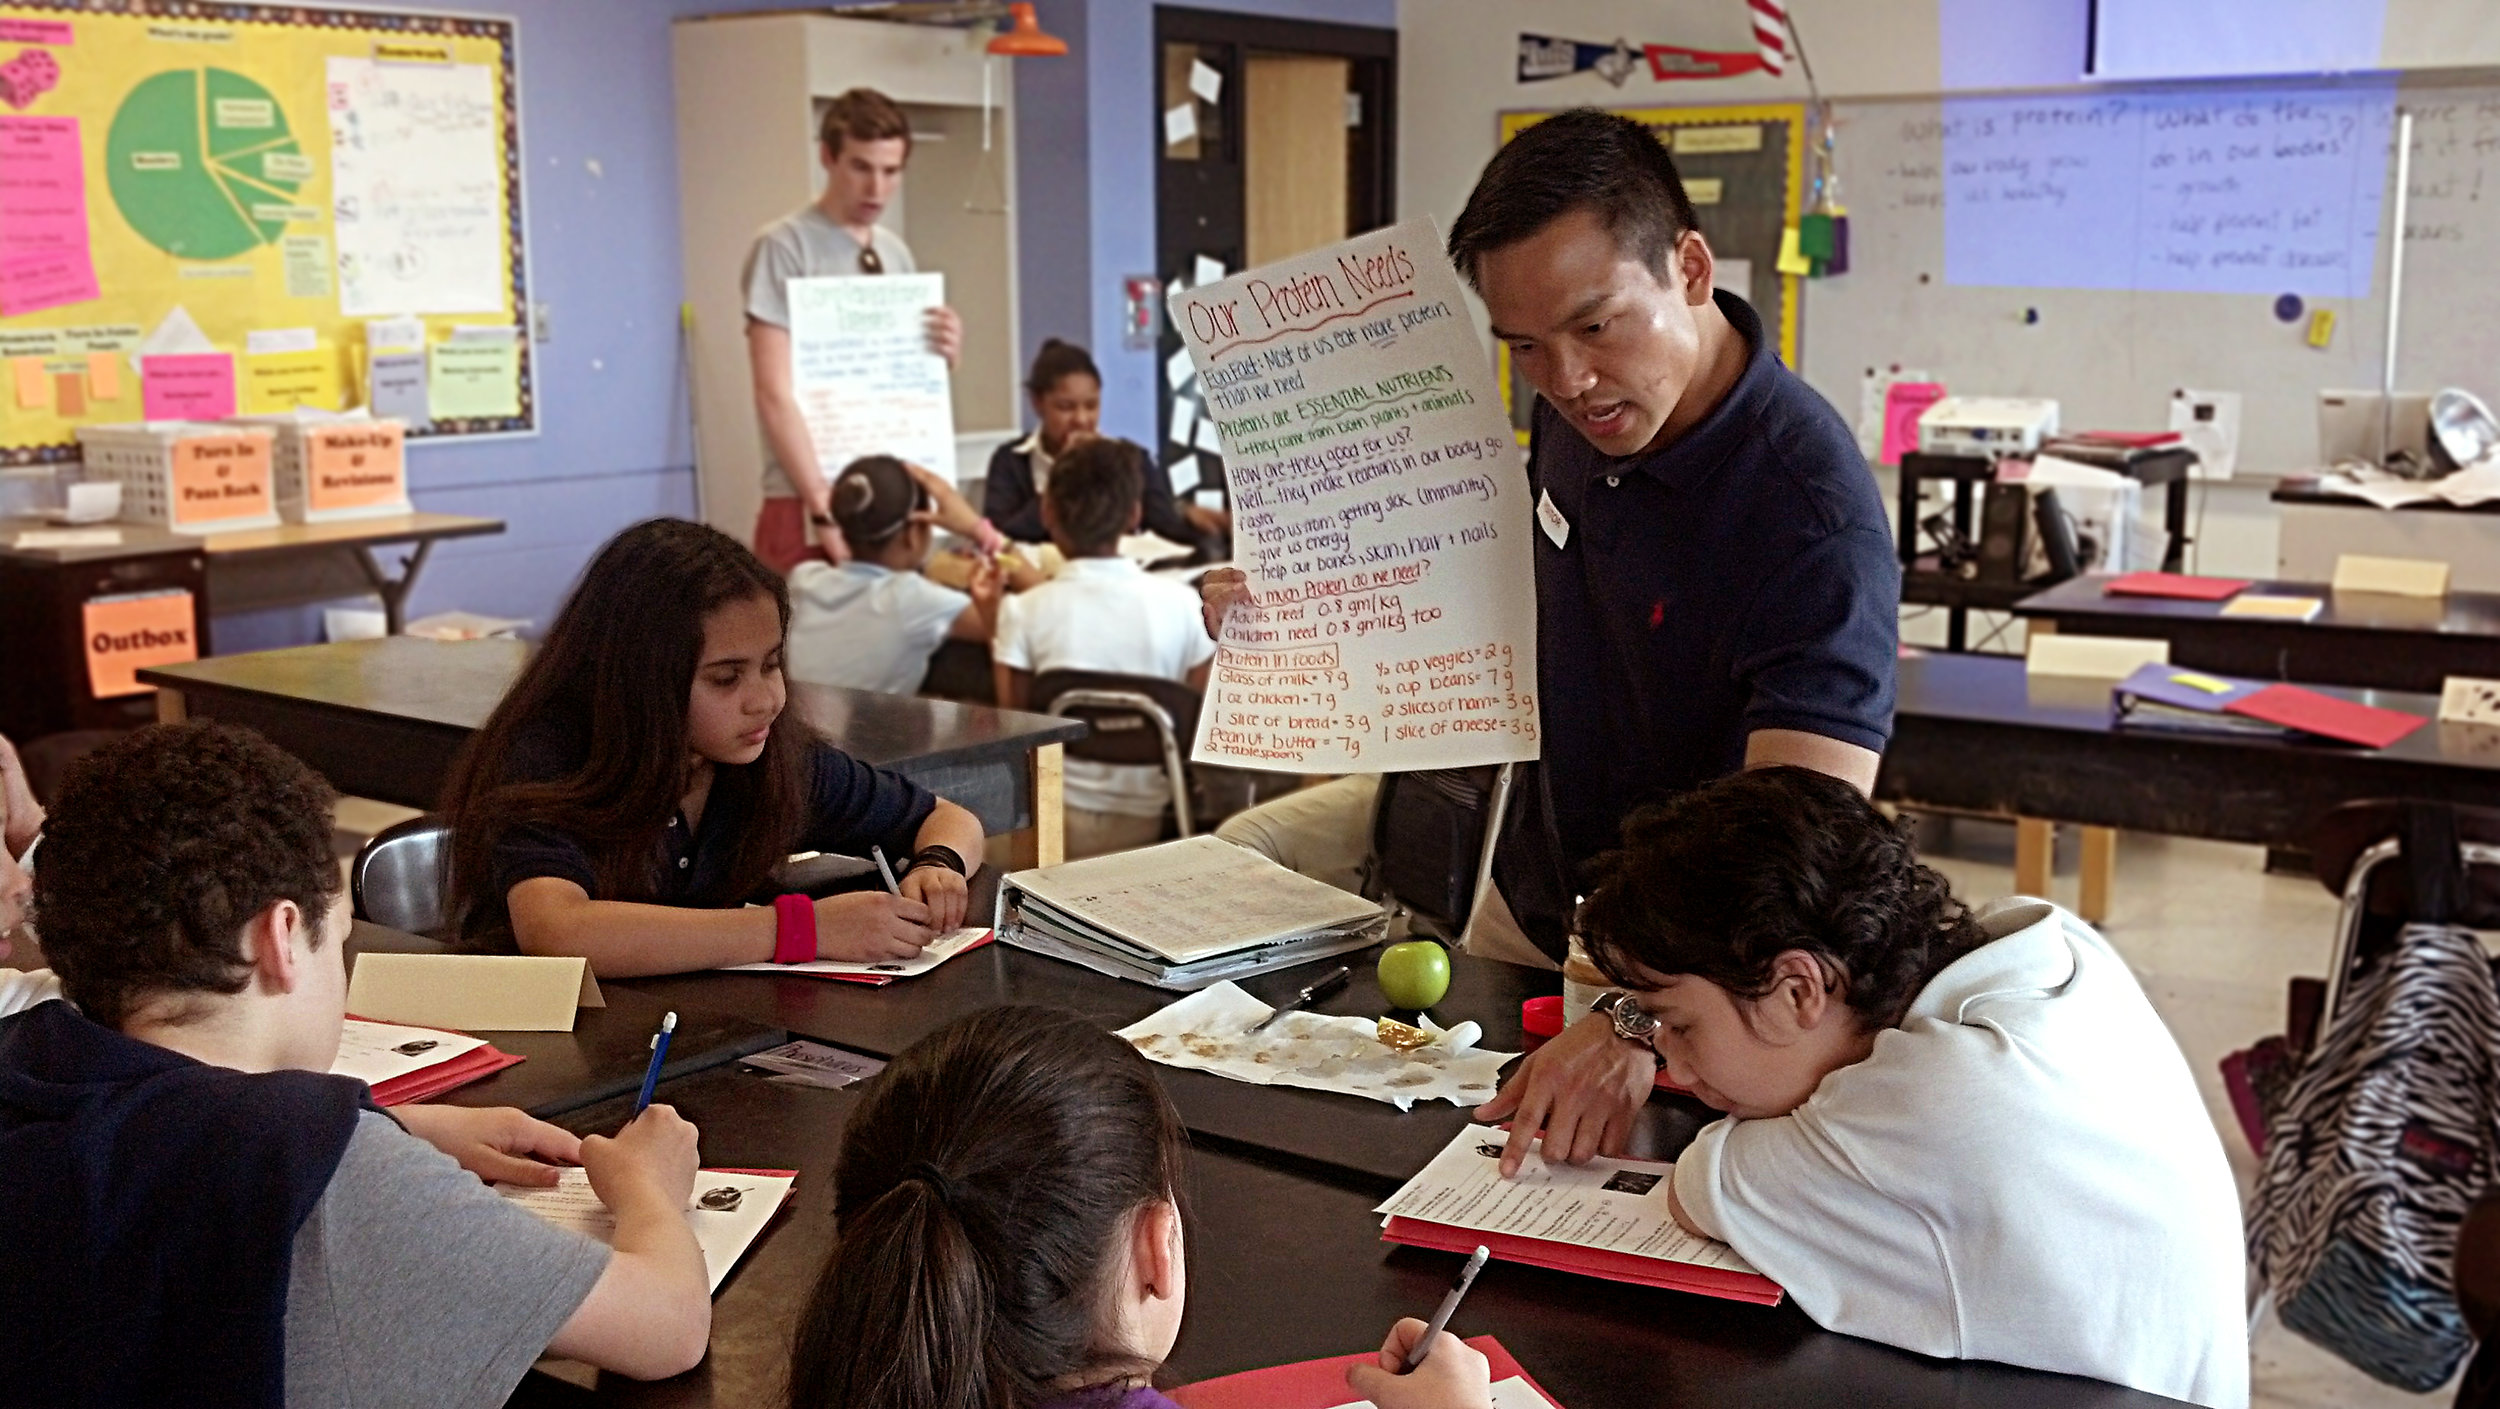 a citizen teacher volunteer is holding a large piece of paper that has nutrition facts written on it.  he is pointing to a worksheet that a student is working on while other students are working nearby.